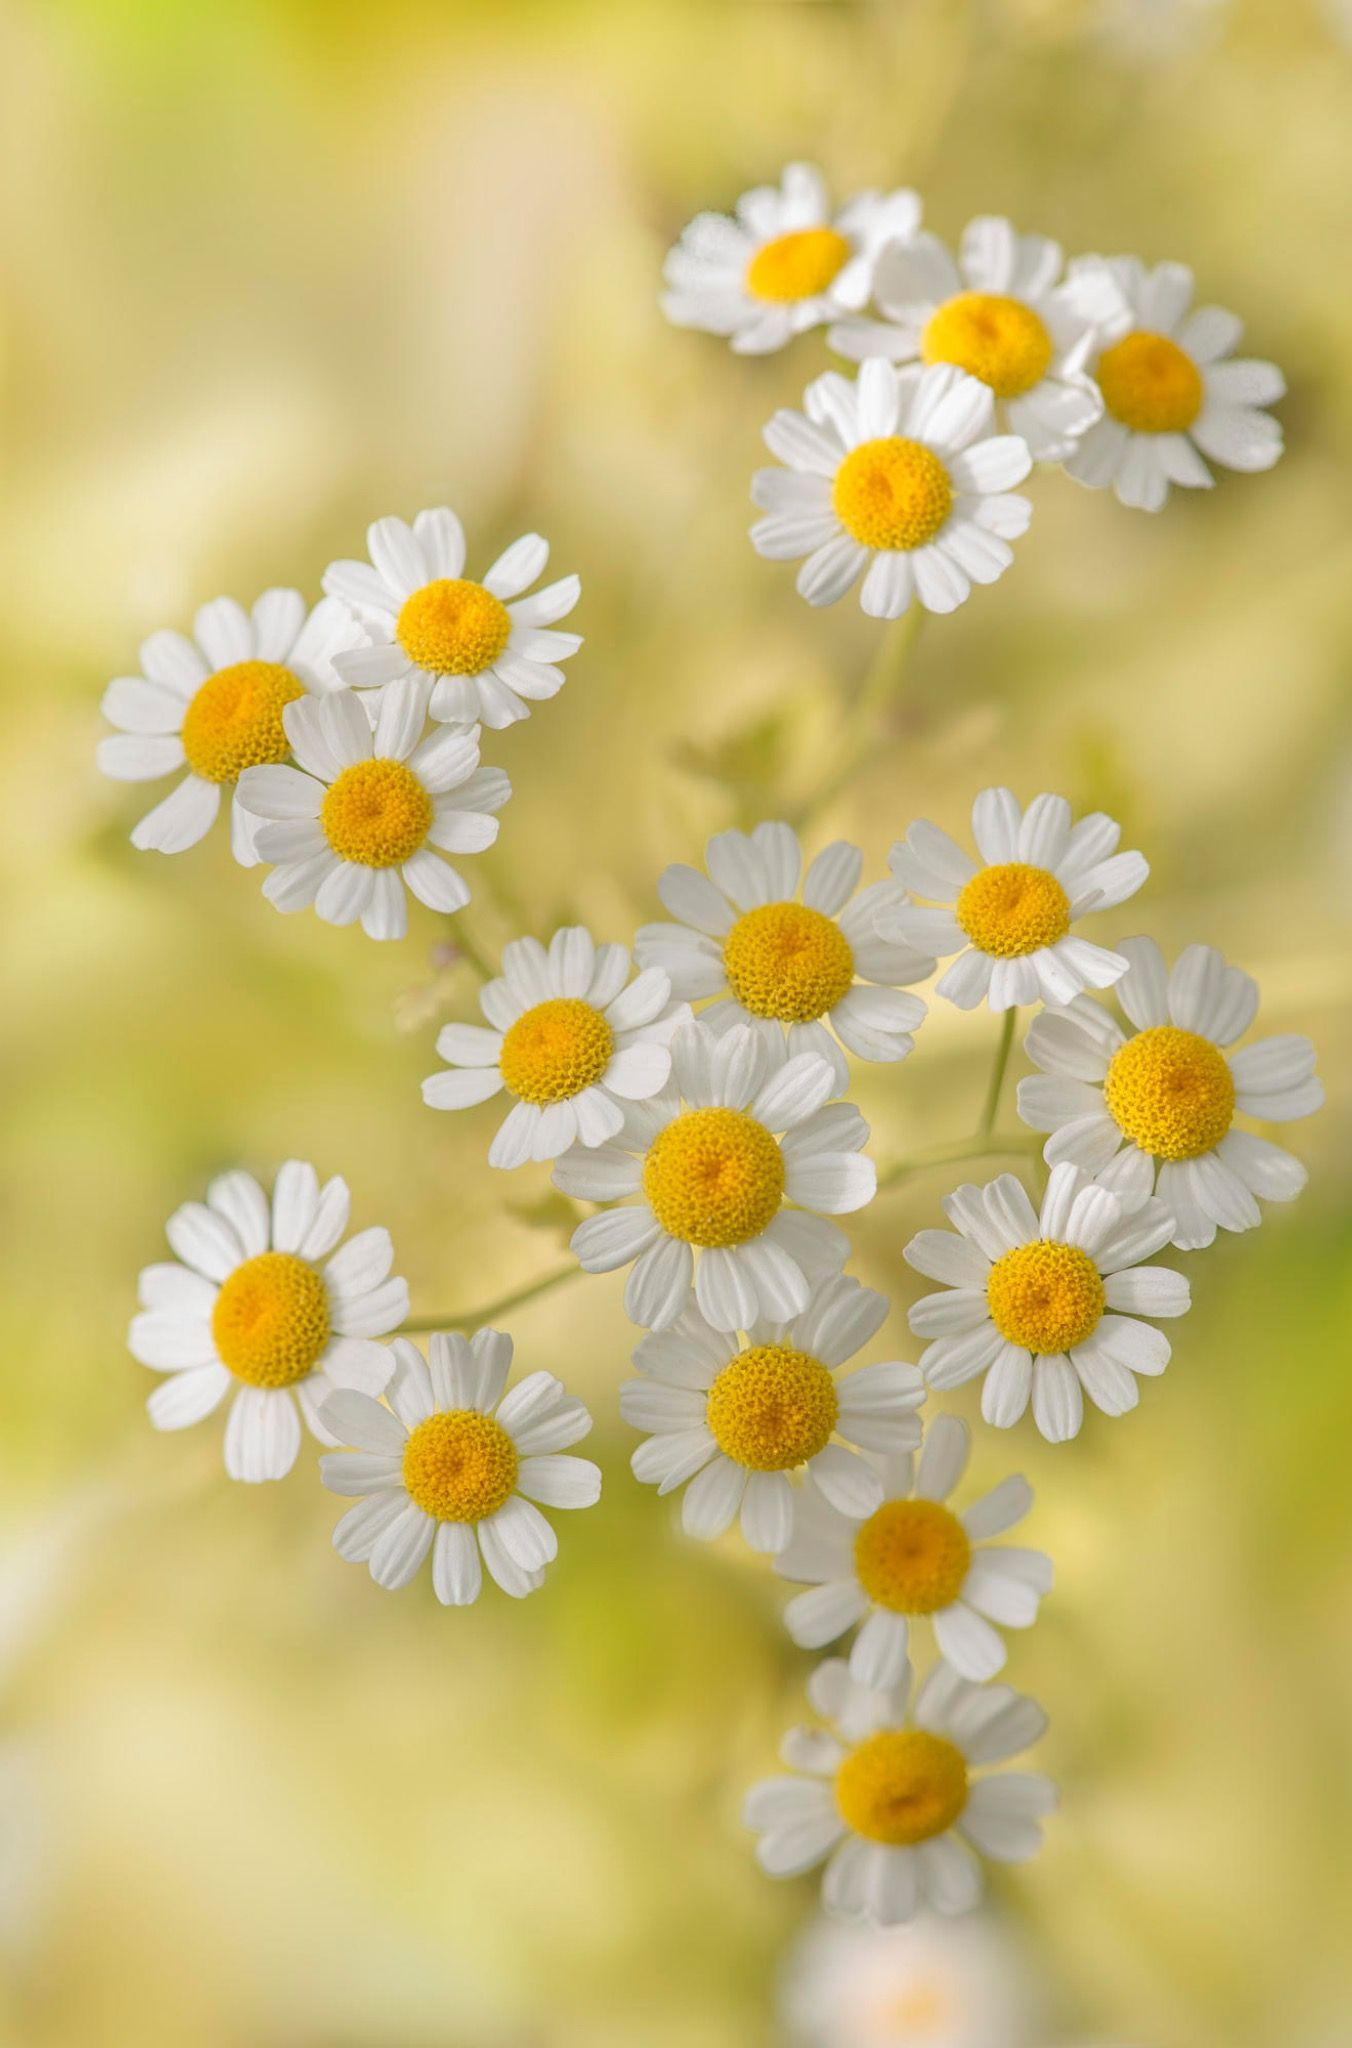 Daisies By Hoang Duong 500px Flowers Pinterest Flowers